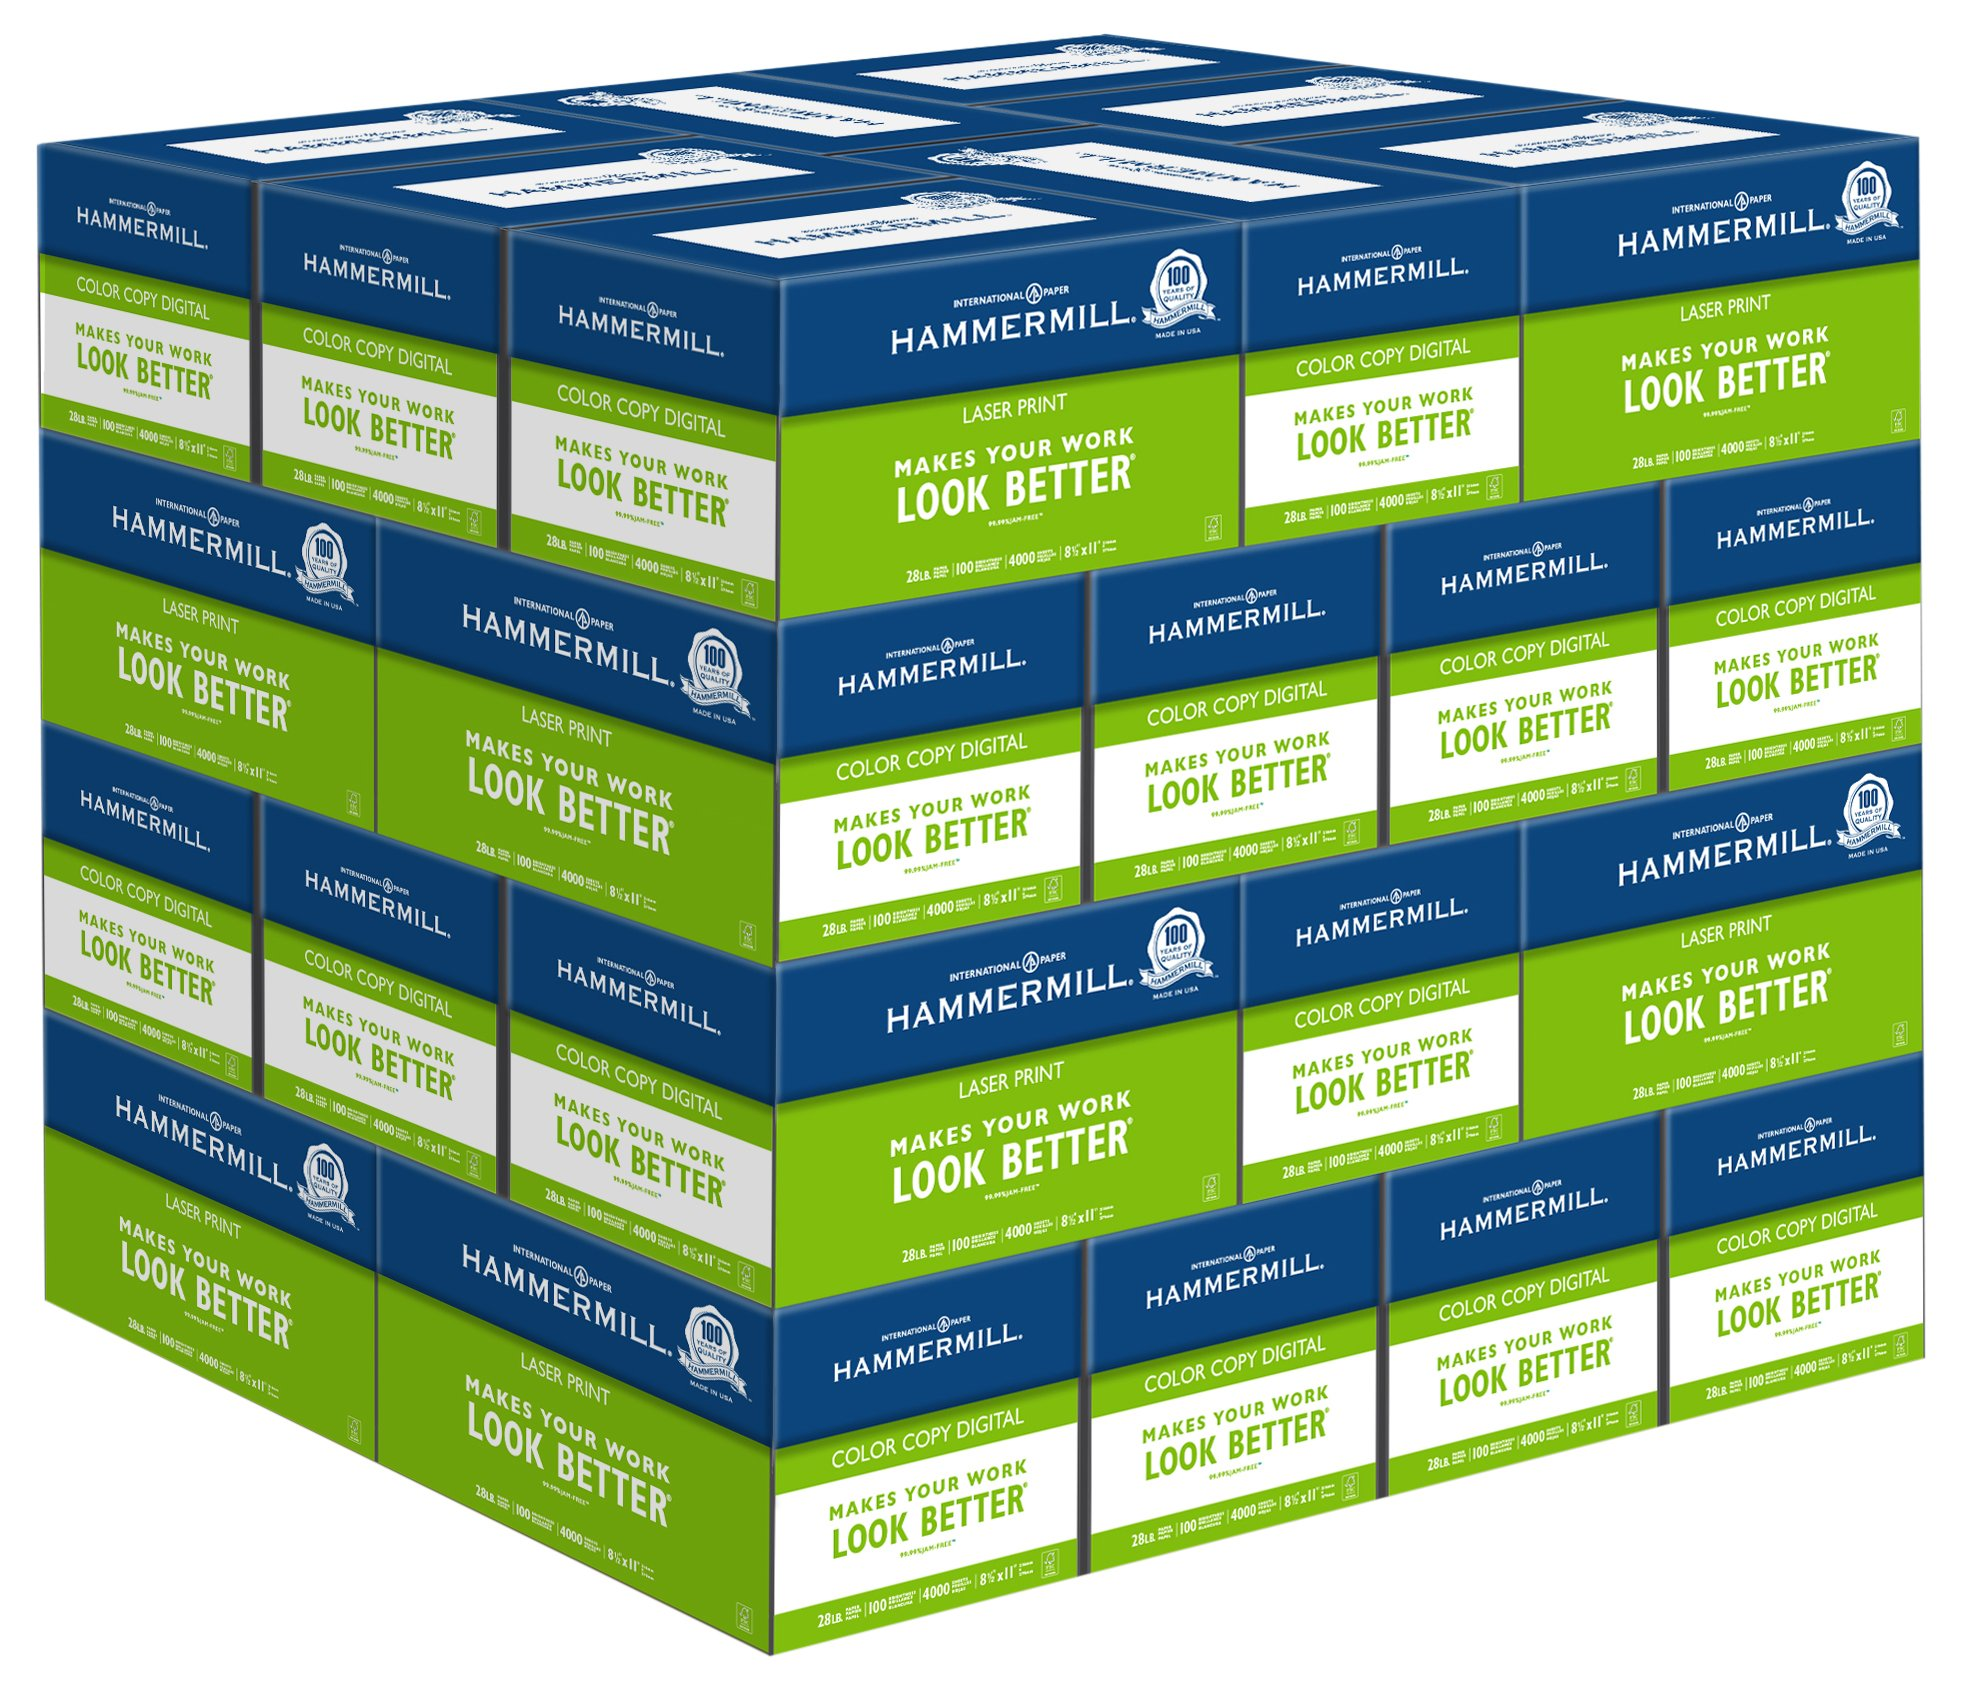 hammermill copy paper Find product information, ratings and reviews for hammermill® copy paper, 100 brightness, 32lb, 8-1/2 x 11, photo white, 500/ream online on targetcom.